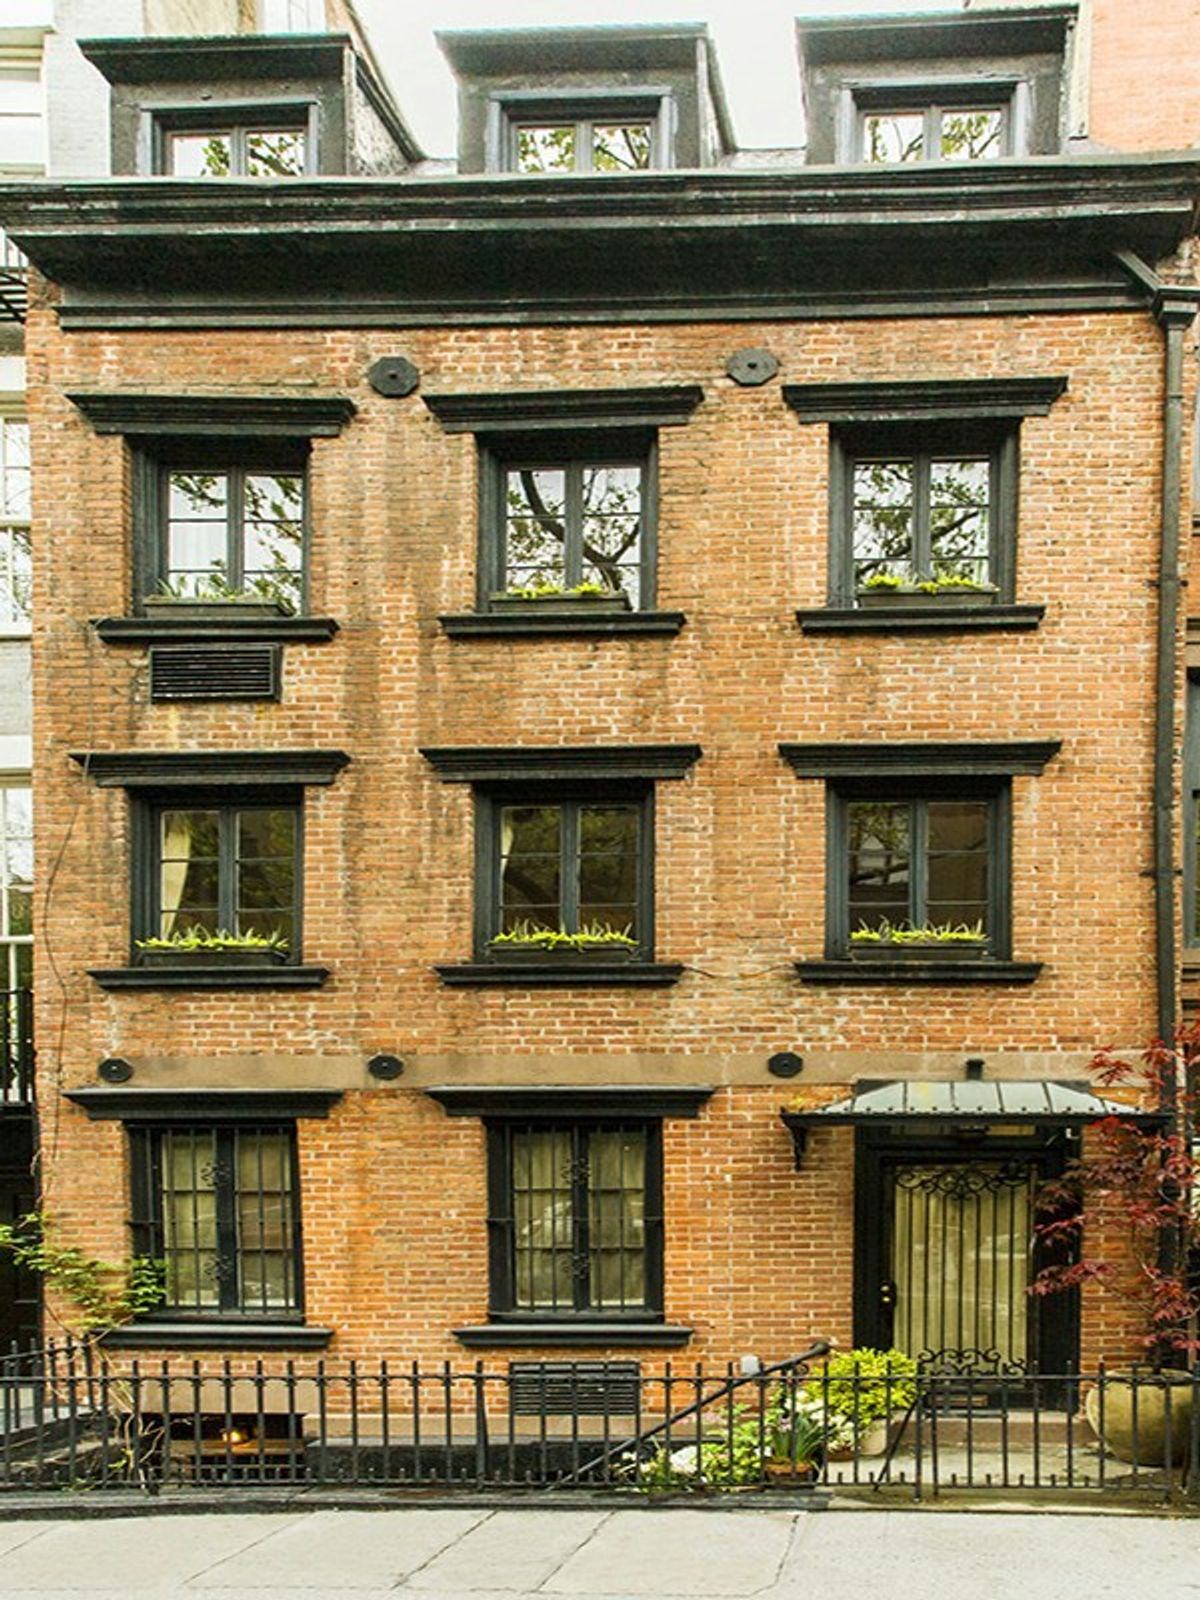 45 West 12th Street, New York NY Townhouse - New York City Real Estate